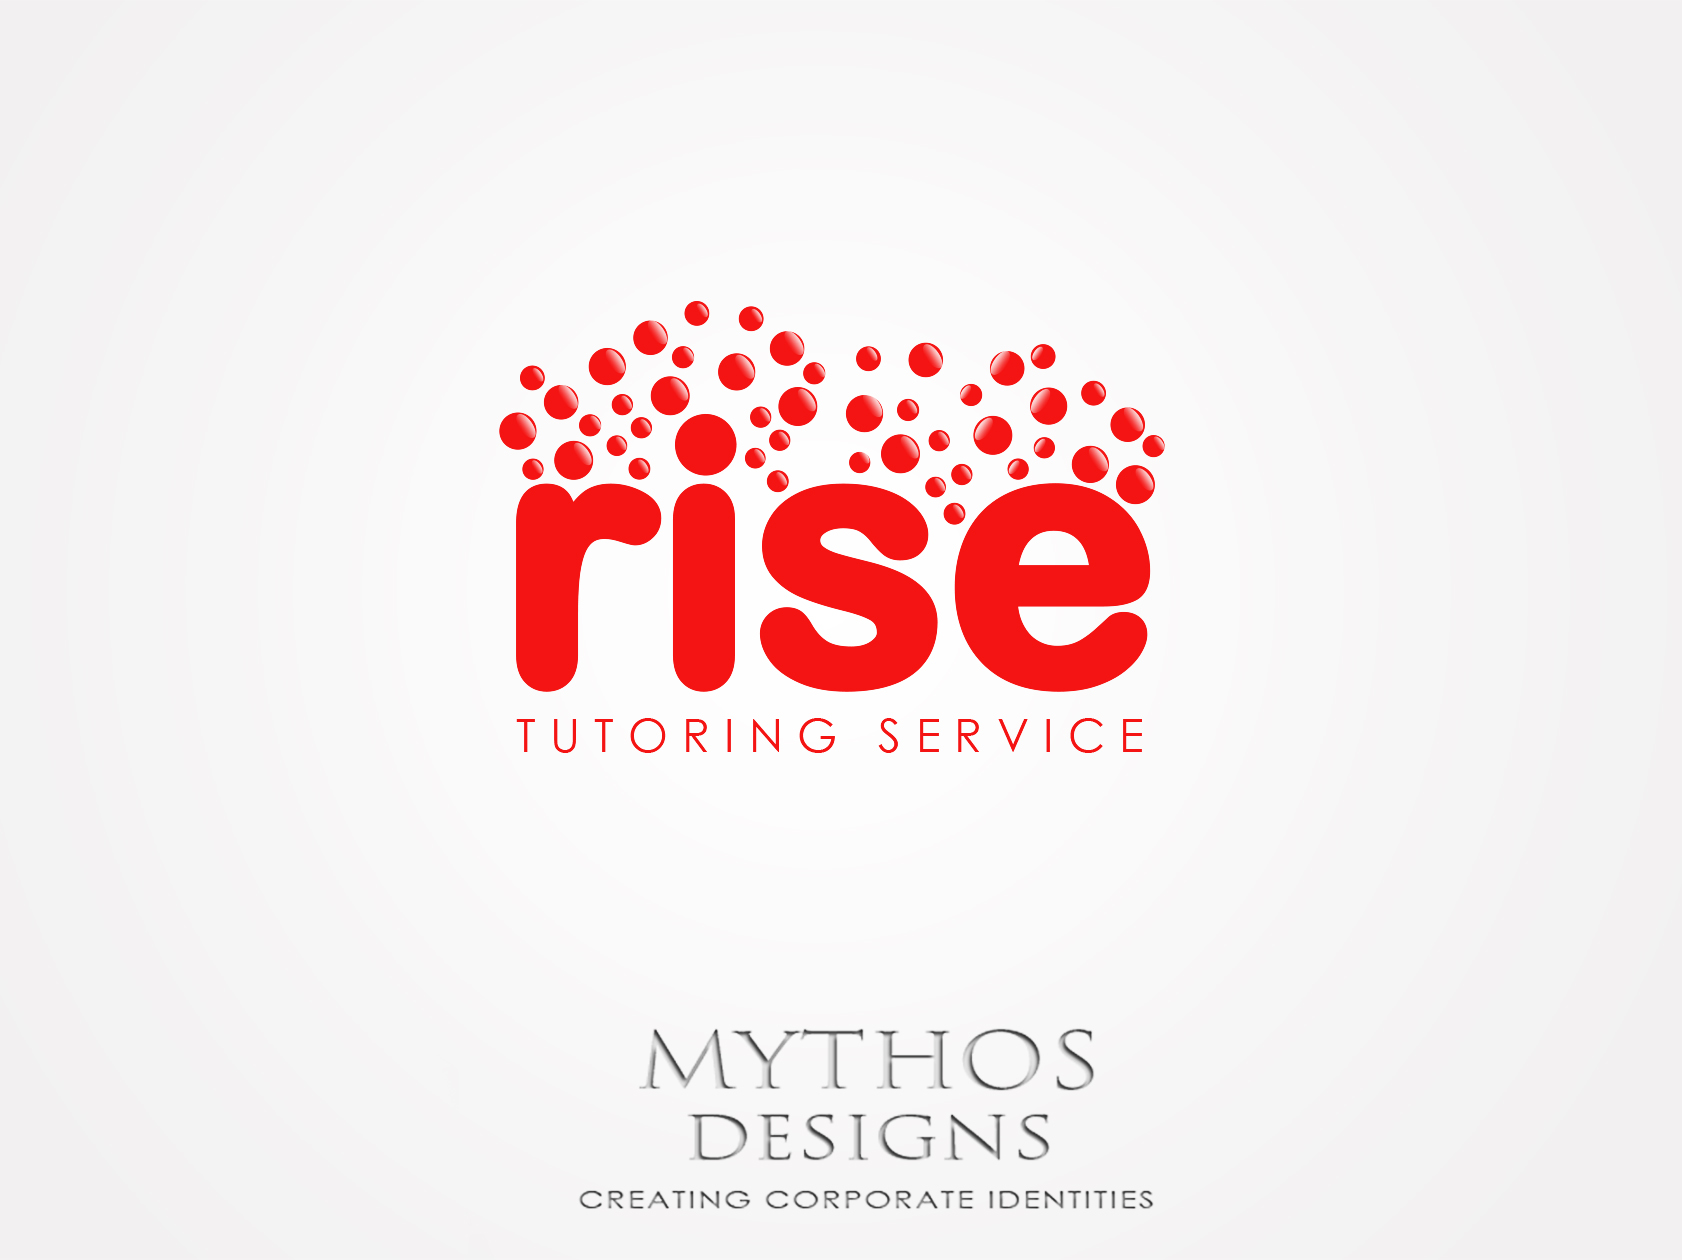 Logo Design by Mythos Designs - Entry No. 241 in the Logo Design Contest Imaginative Logo Design for Rise Tutoring Service.